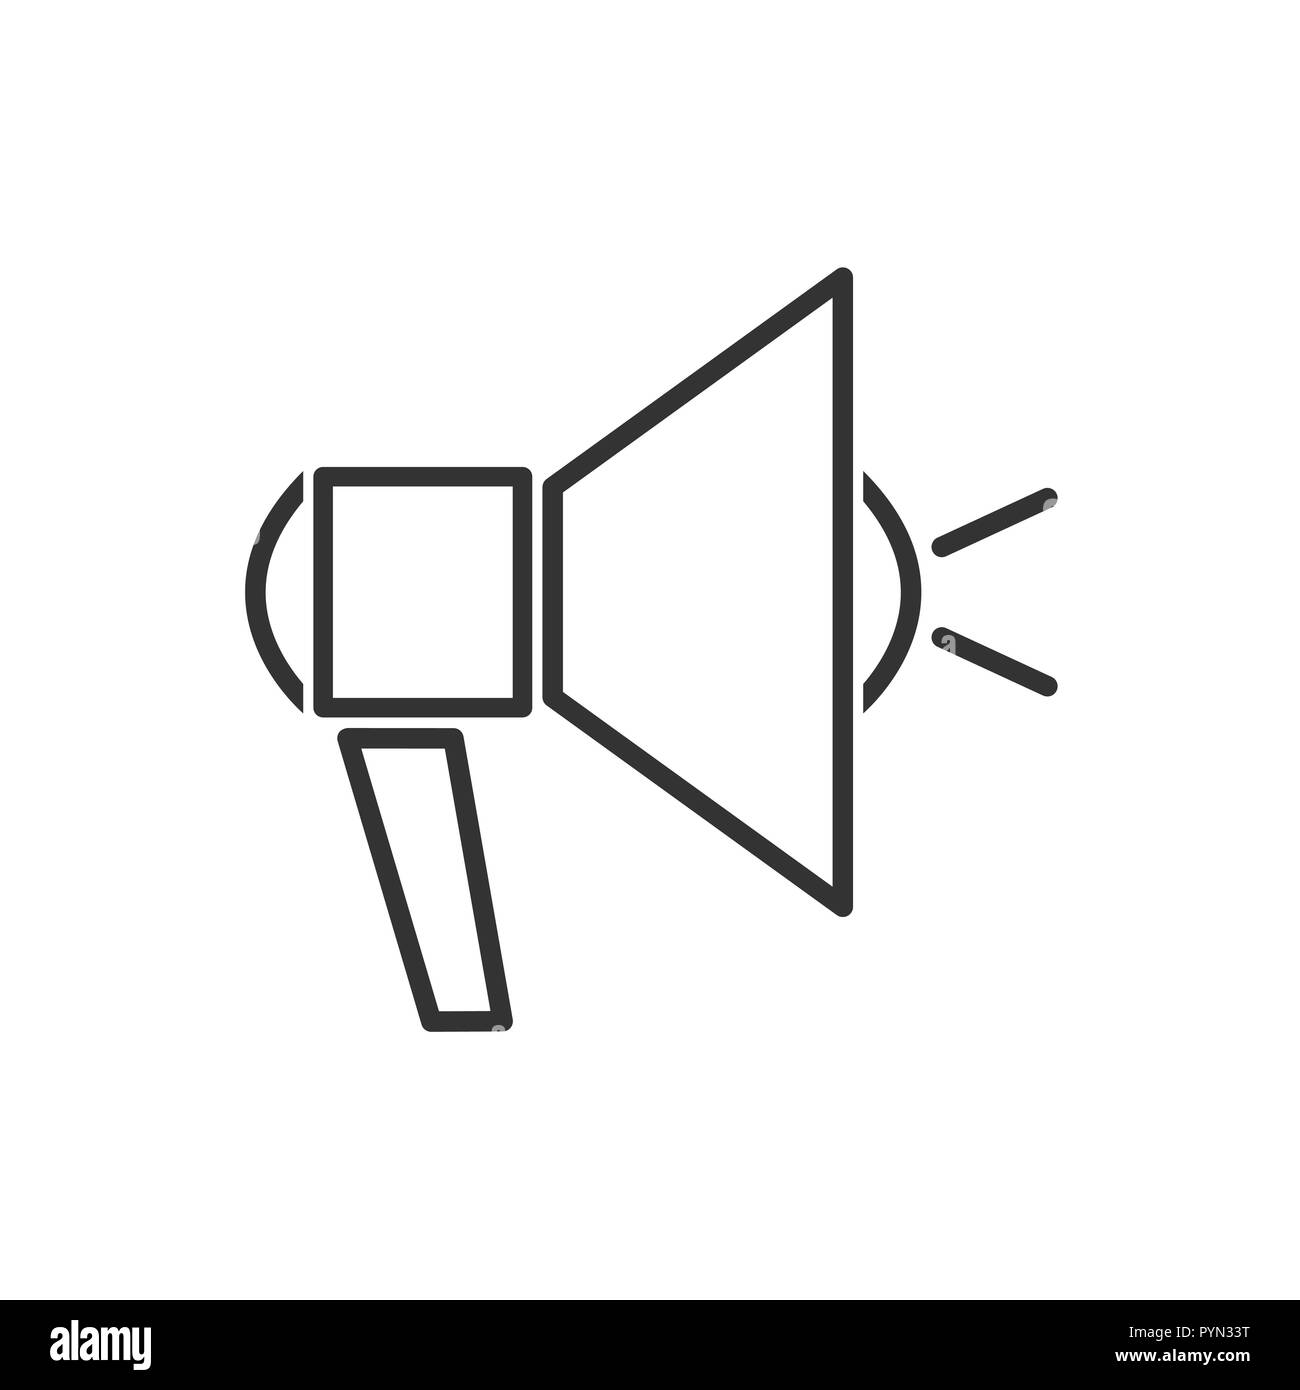 Megaphone line icon on a white background. Vector illustration - Stock Image